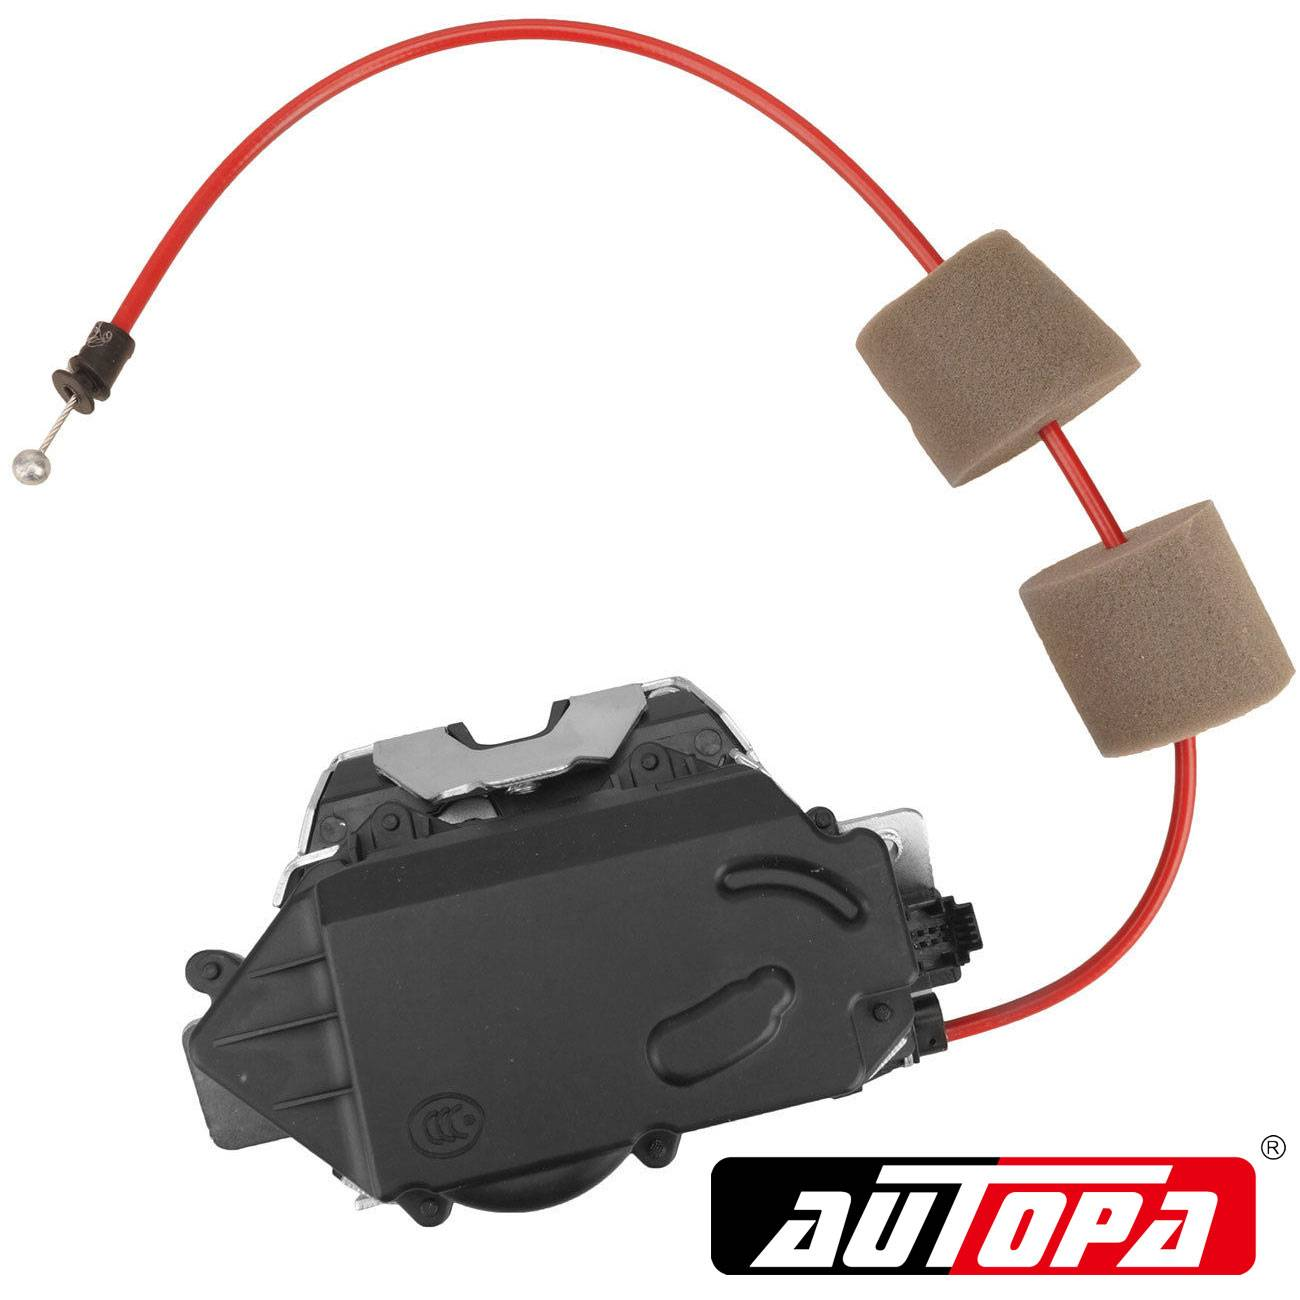 AUTOPA 1647400735 Rear Tailgate Trunk Lift Door Hatch Lock Actuator for Mercedes W164 X164 V251 GL320 GL450 R350 ML500